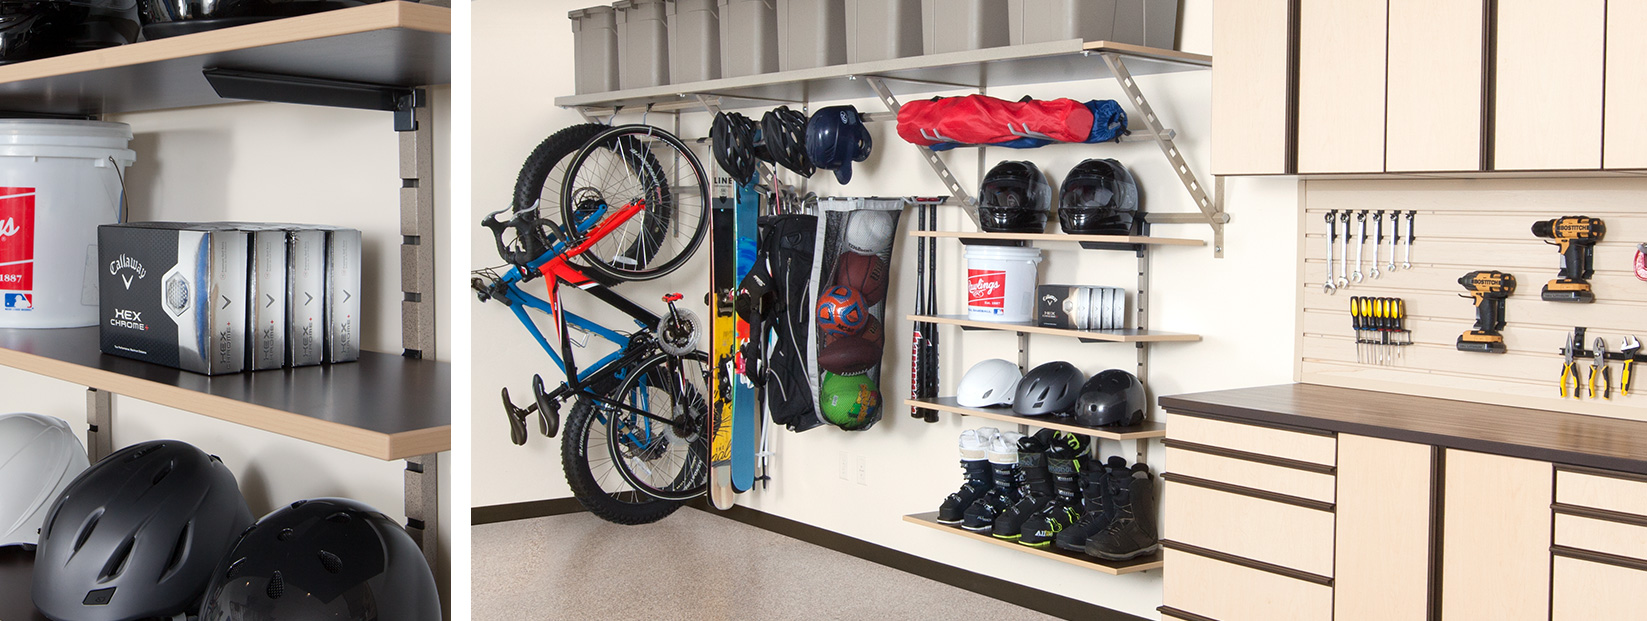 Garage Shelving System Raleigh